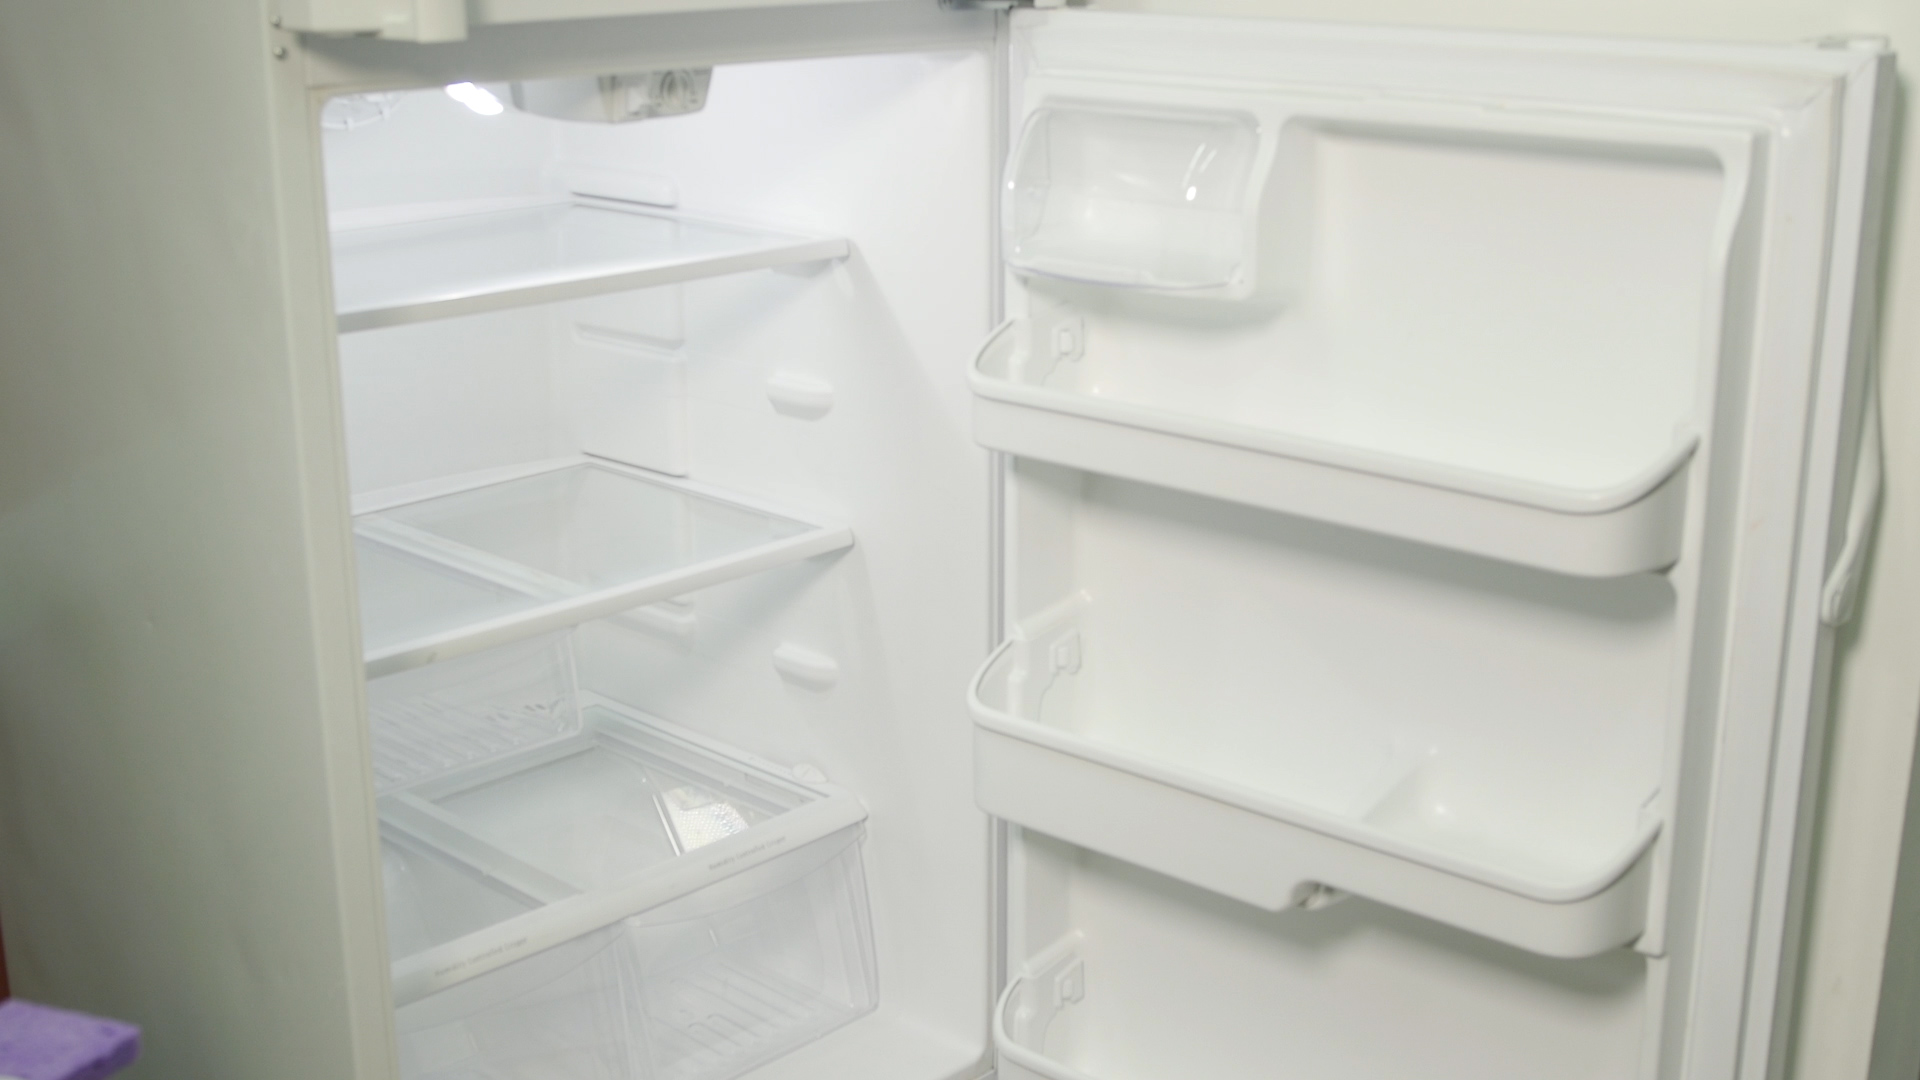 How To Clean A Smelly Fridge